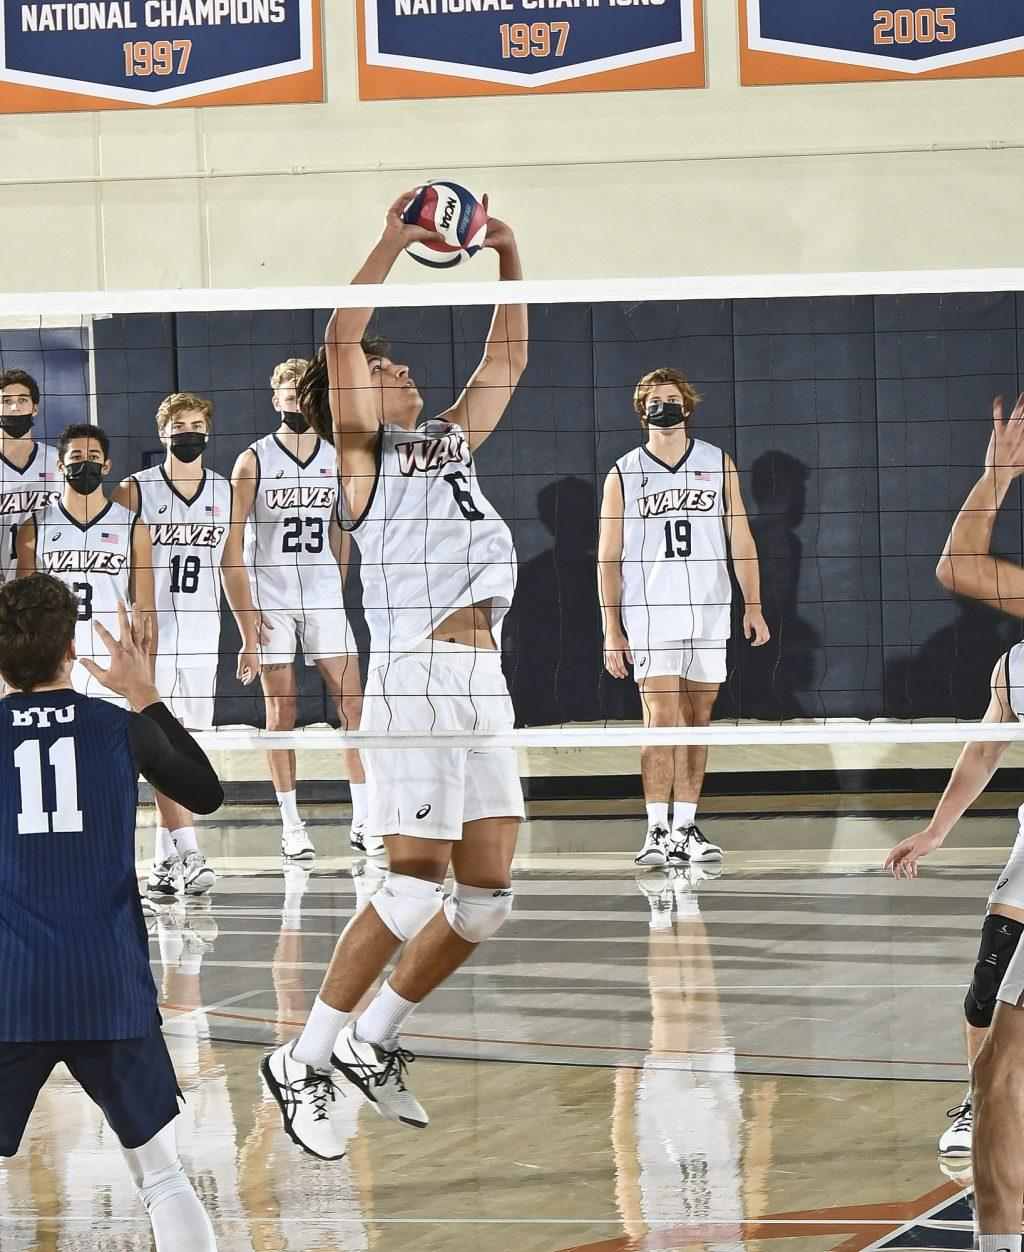 Freshman setter Bryce Dvorak delivers a set to a Waves teammate Friday. Dvorak finished with 33 assists and 6 digs in a four-set loss. Photo courtesy of Martin A. Folb | Pepperdine Athletics